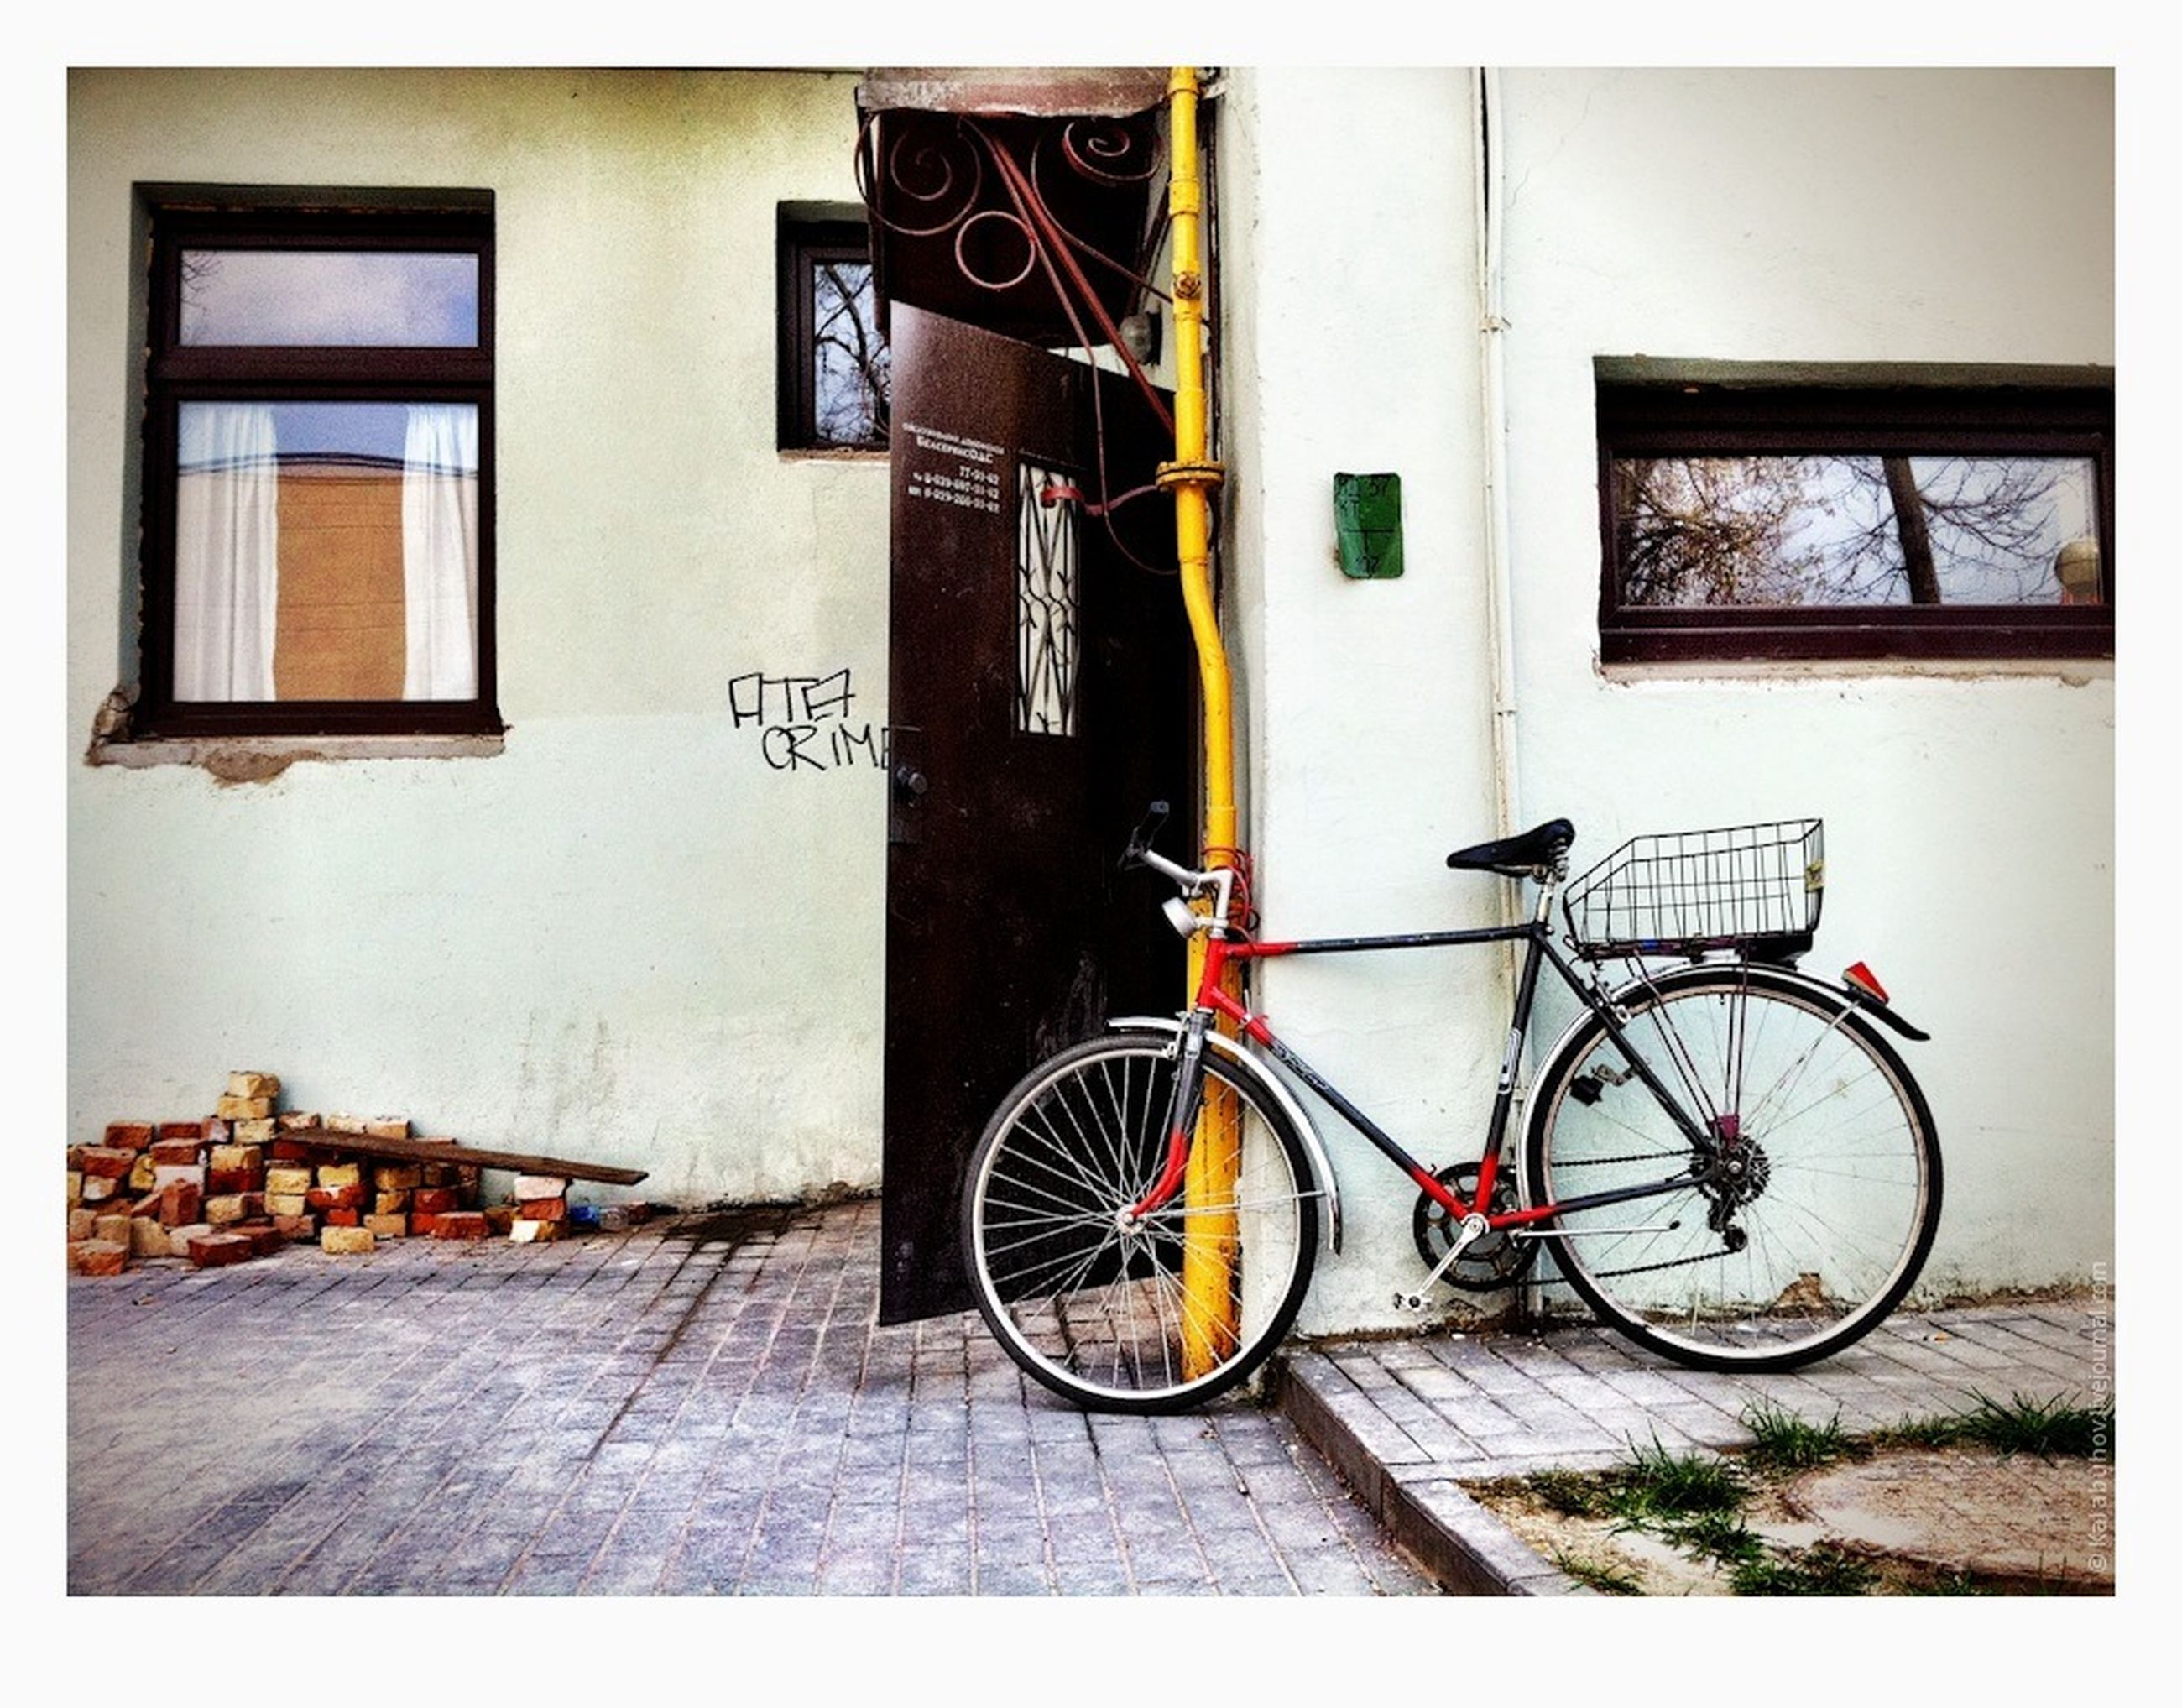 bicycle, transportation, land vehicle, stationary, mode of transport, parked, parking, building exterior, architecture, built structure, street, transfer print, auto post production filter, wall - building feature, sidewalk, leaning, wall, cycle, day, house